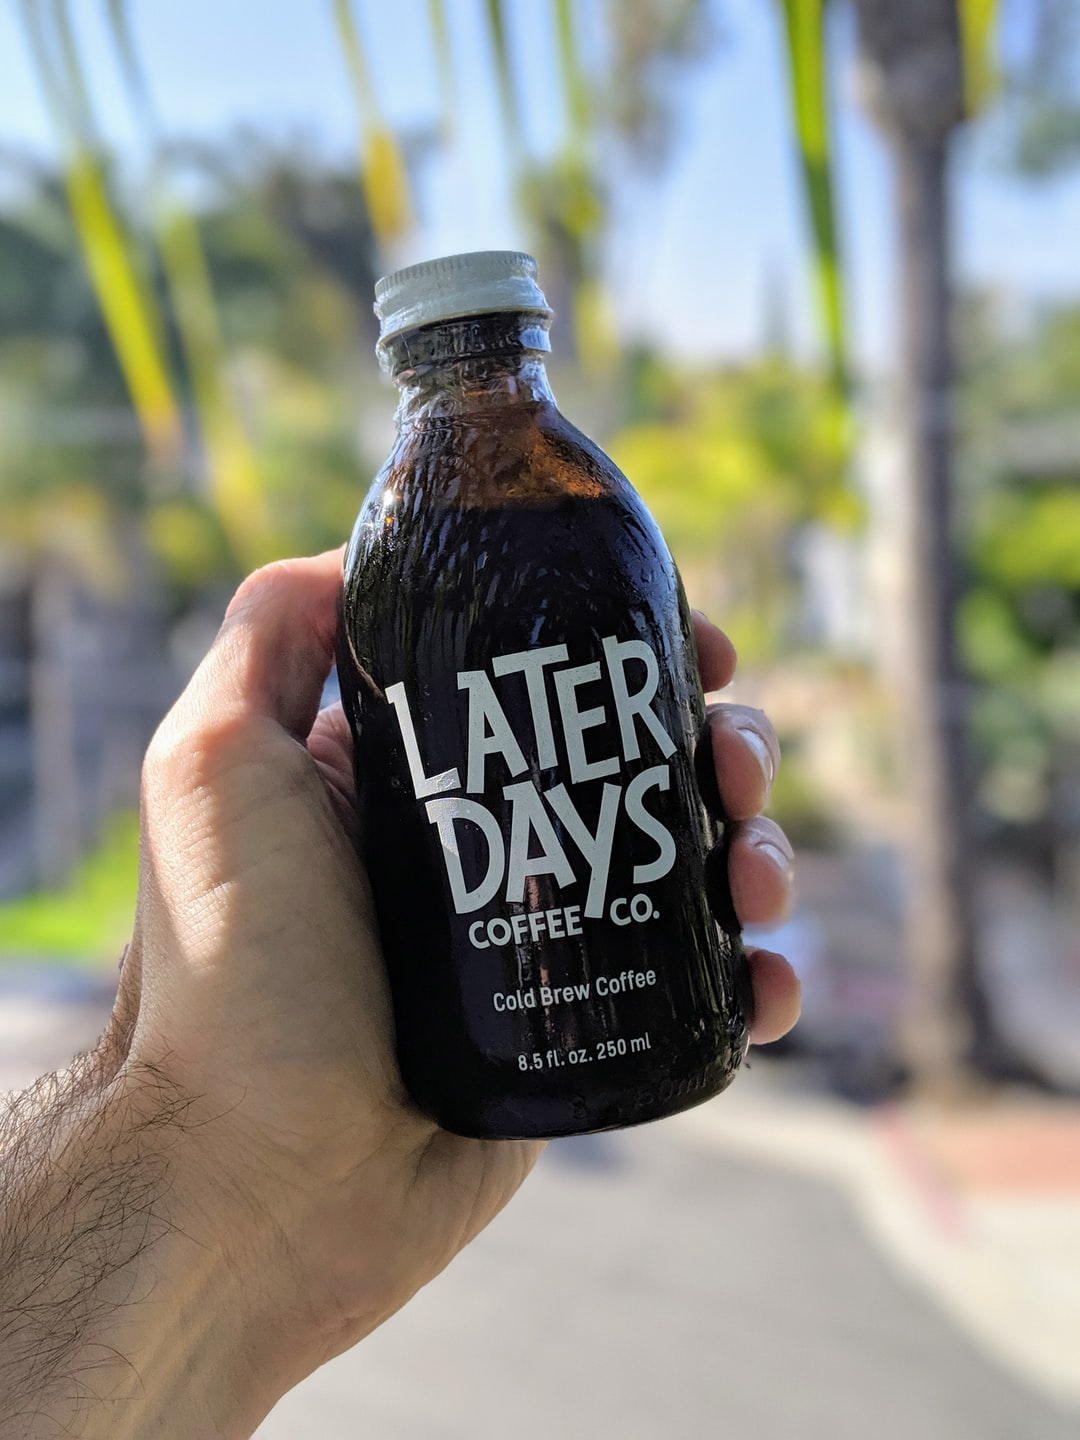 Later days coffee company cold brew. A damn fine way to start the day!